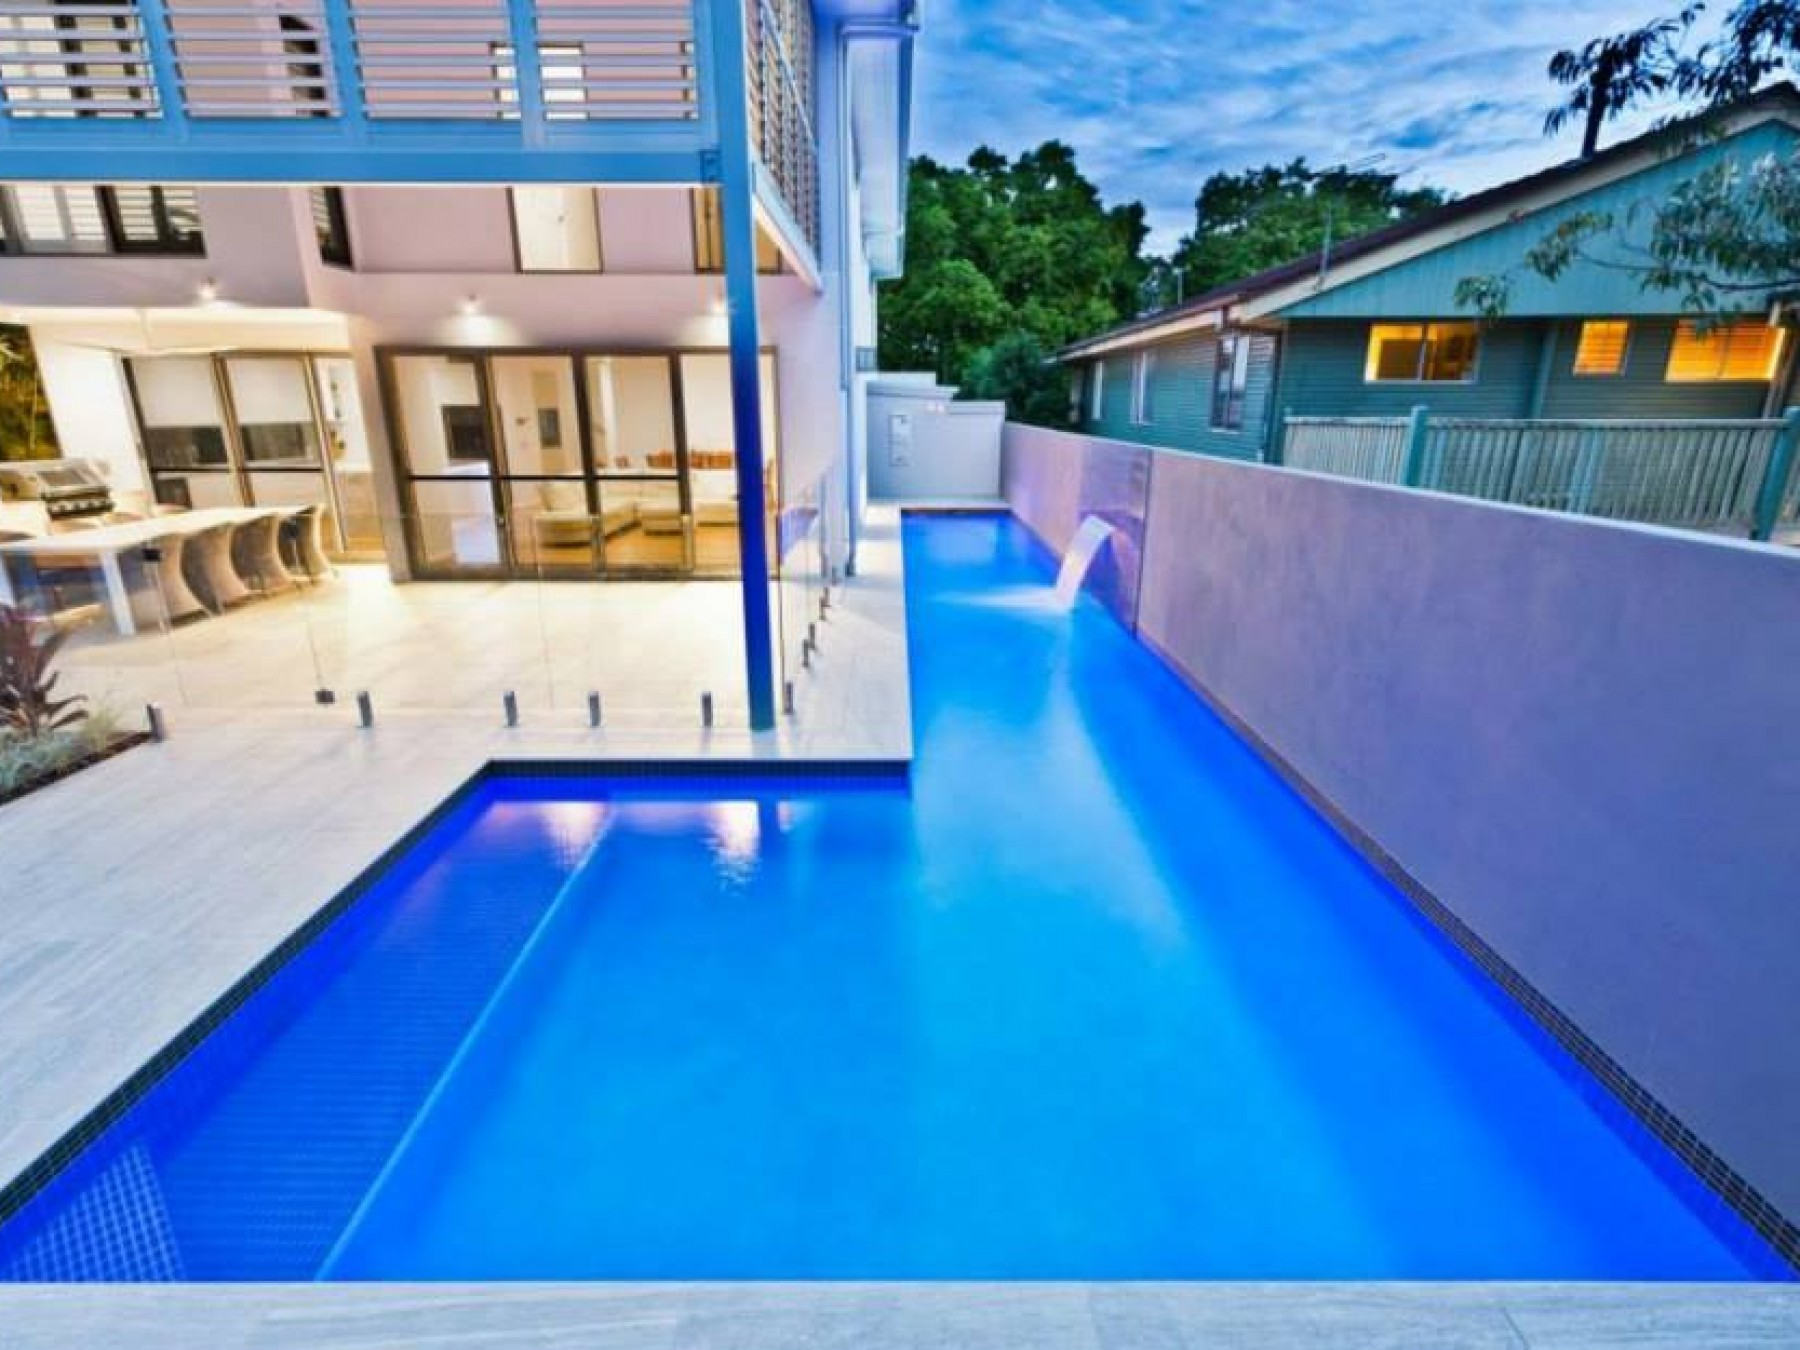 Selling or Leasing a pool in Ferny Grove